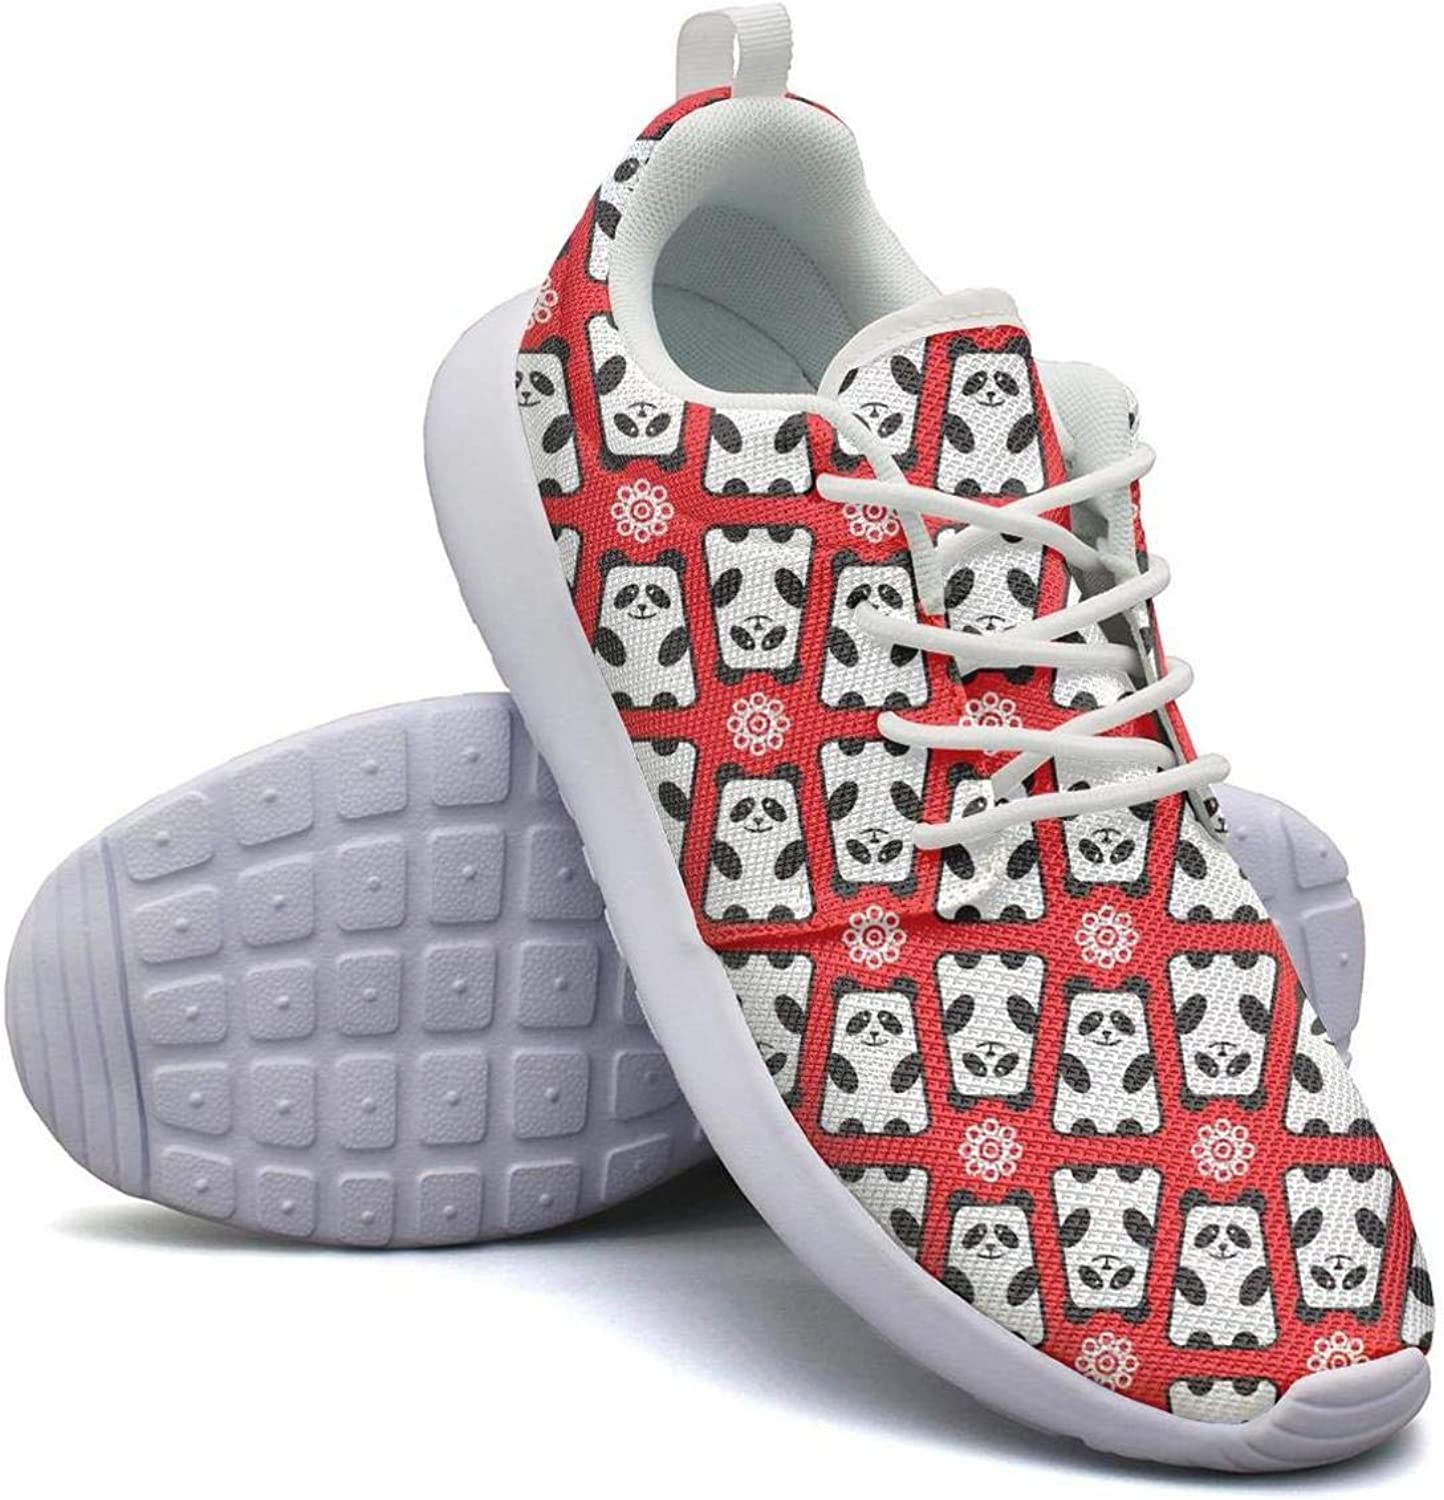 FEWW11 Women Fashion Lightweight shoes Sneakers Giant Panda Bears Pattern Canvas Upper Running Lace-Up